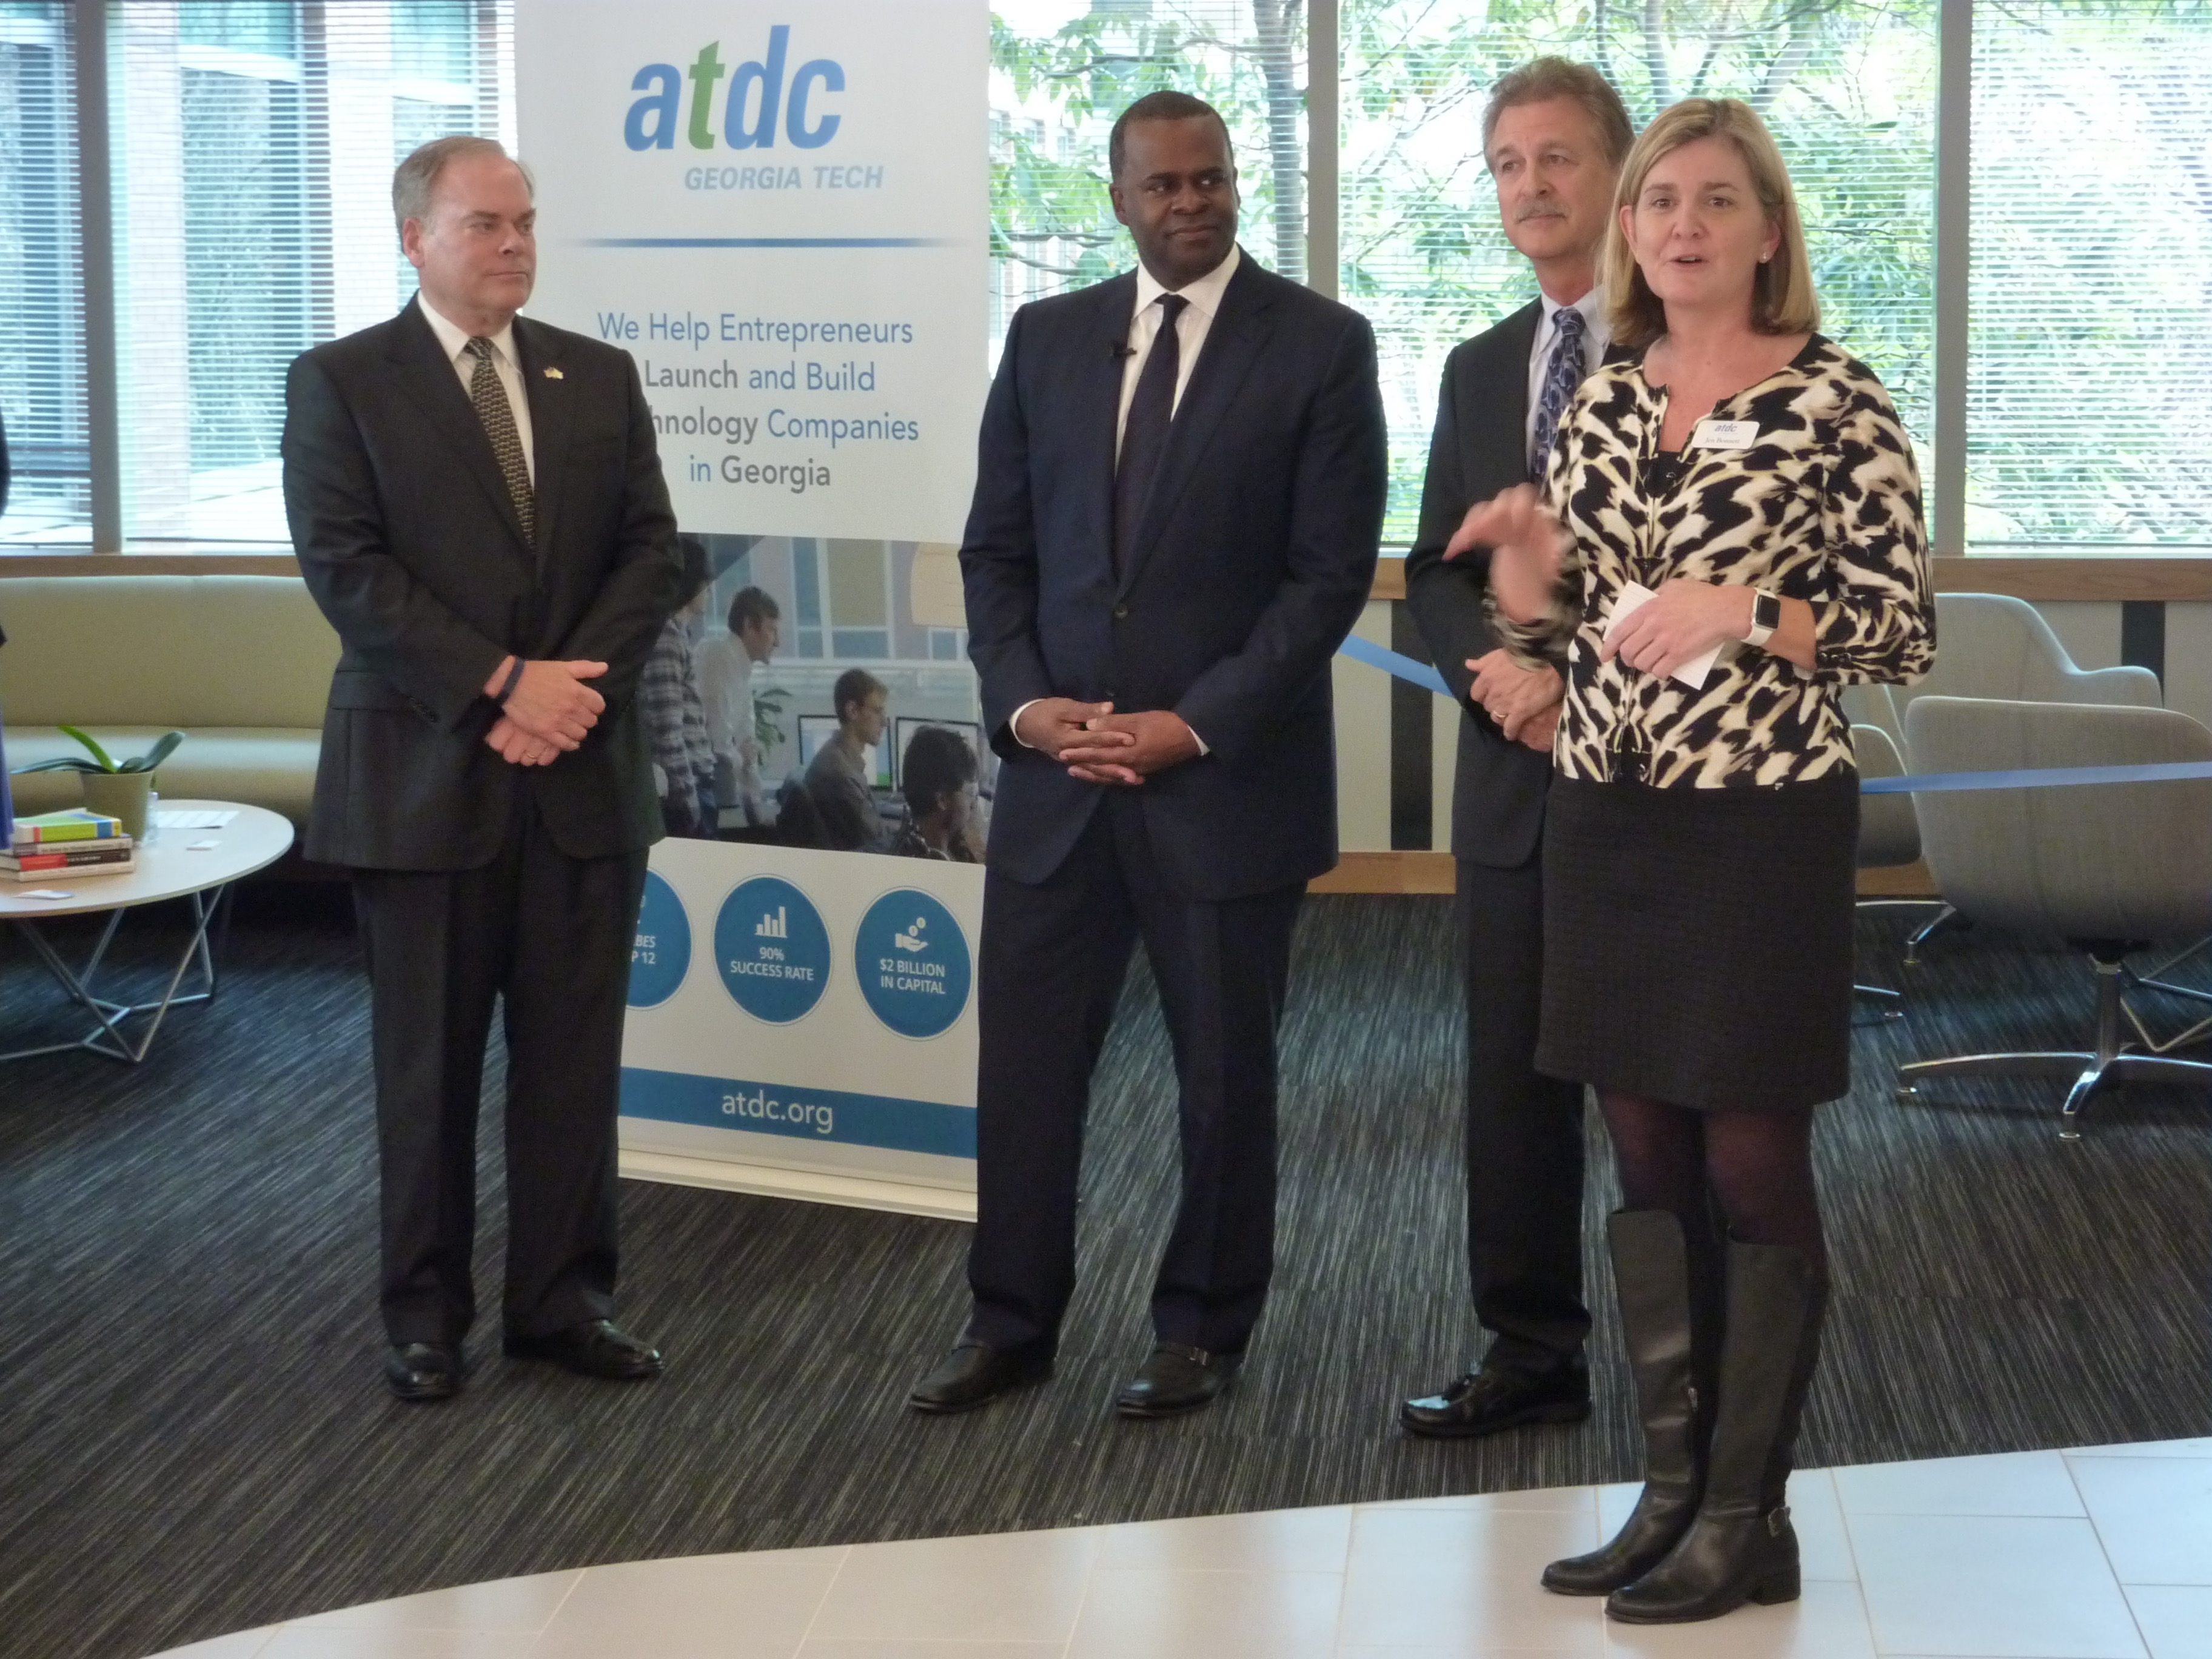 Jen Bonnett, foreground, right, addresses the Tech Square community March 23, 2016 and details the renovations made to ATDC's floor at the Centergy building in Midtown Atlanta.